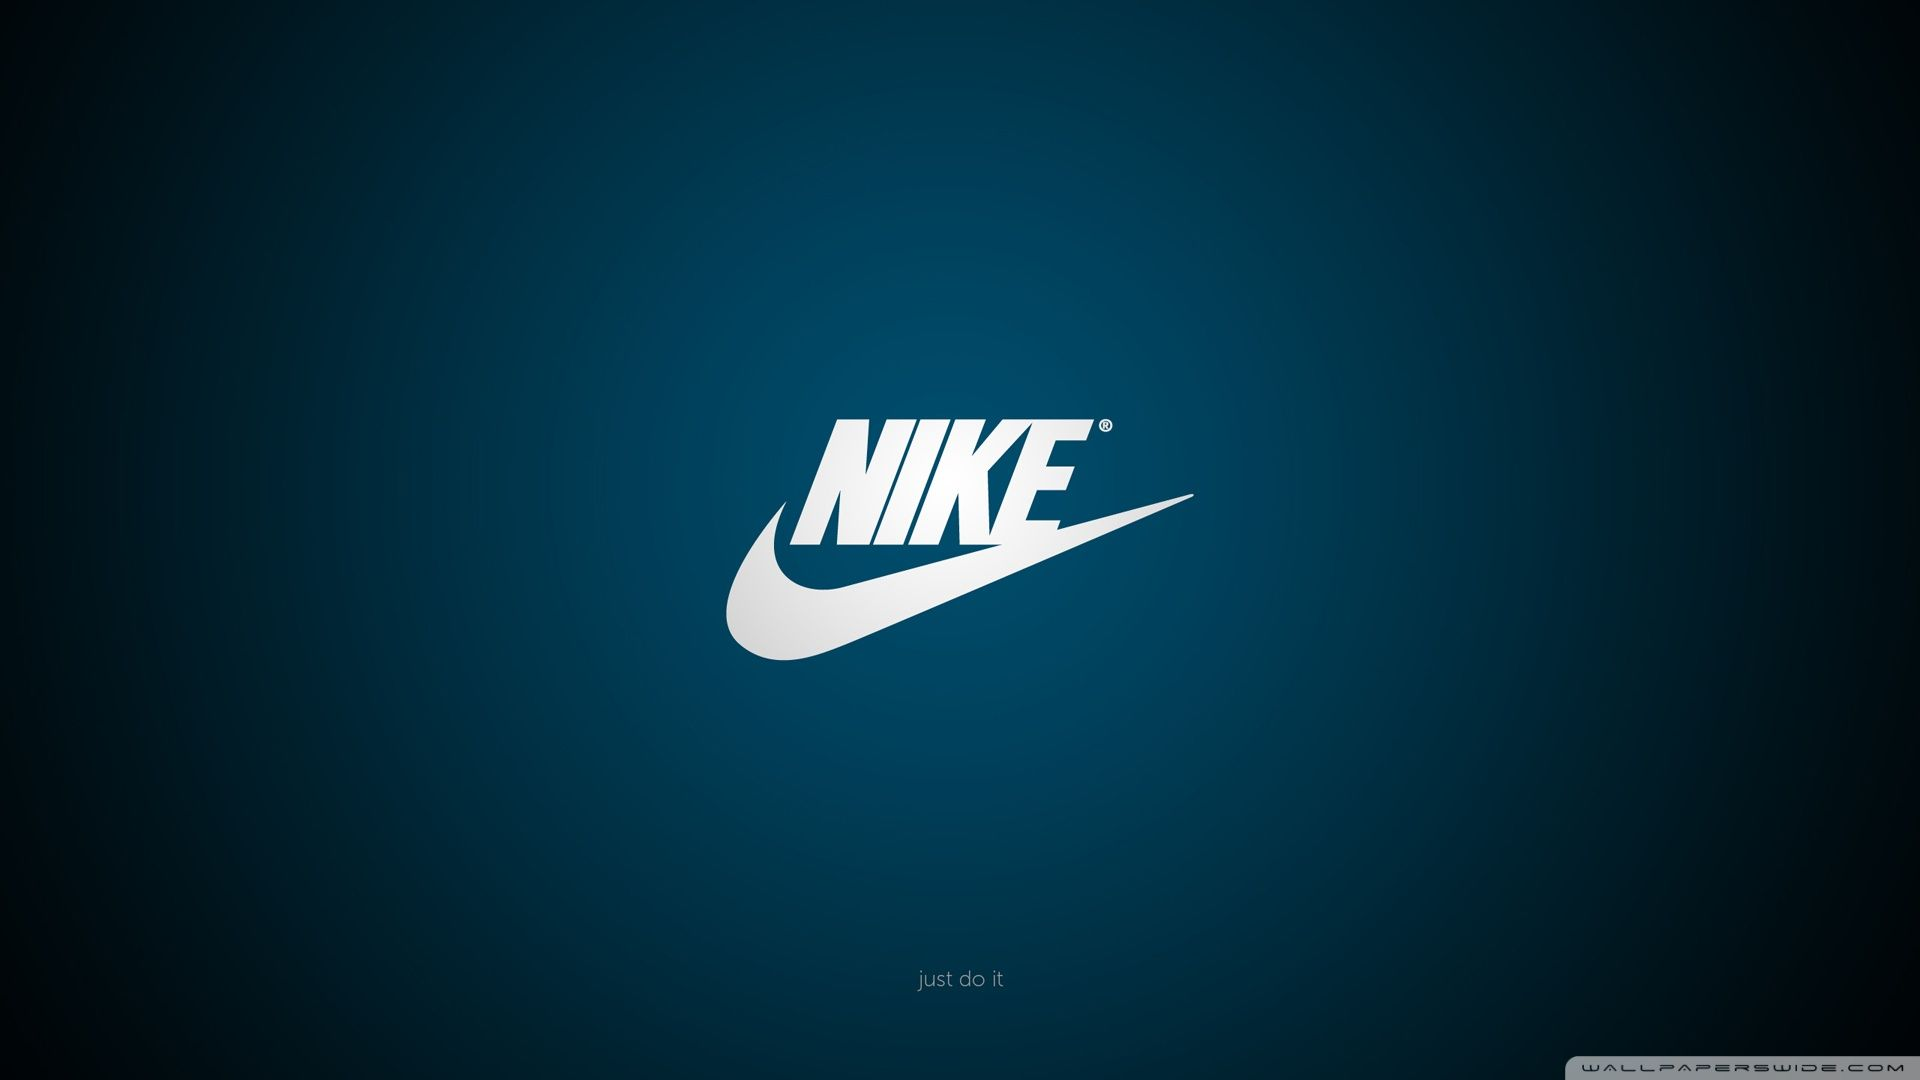 Hd 16 9 Nike Logo Wallpapers Nike Wallpaper Logo Wallpaper Hd